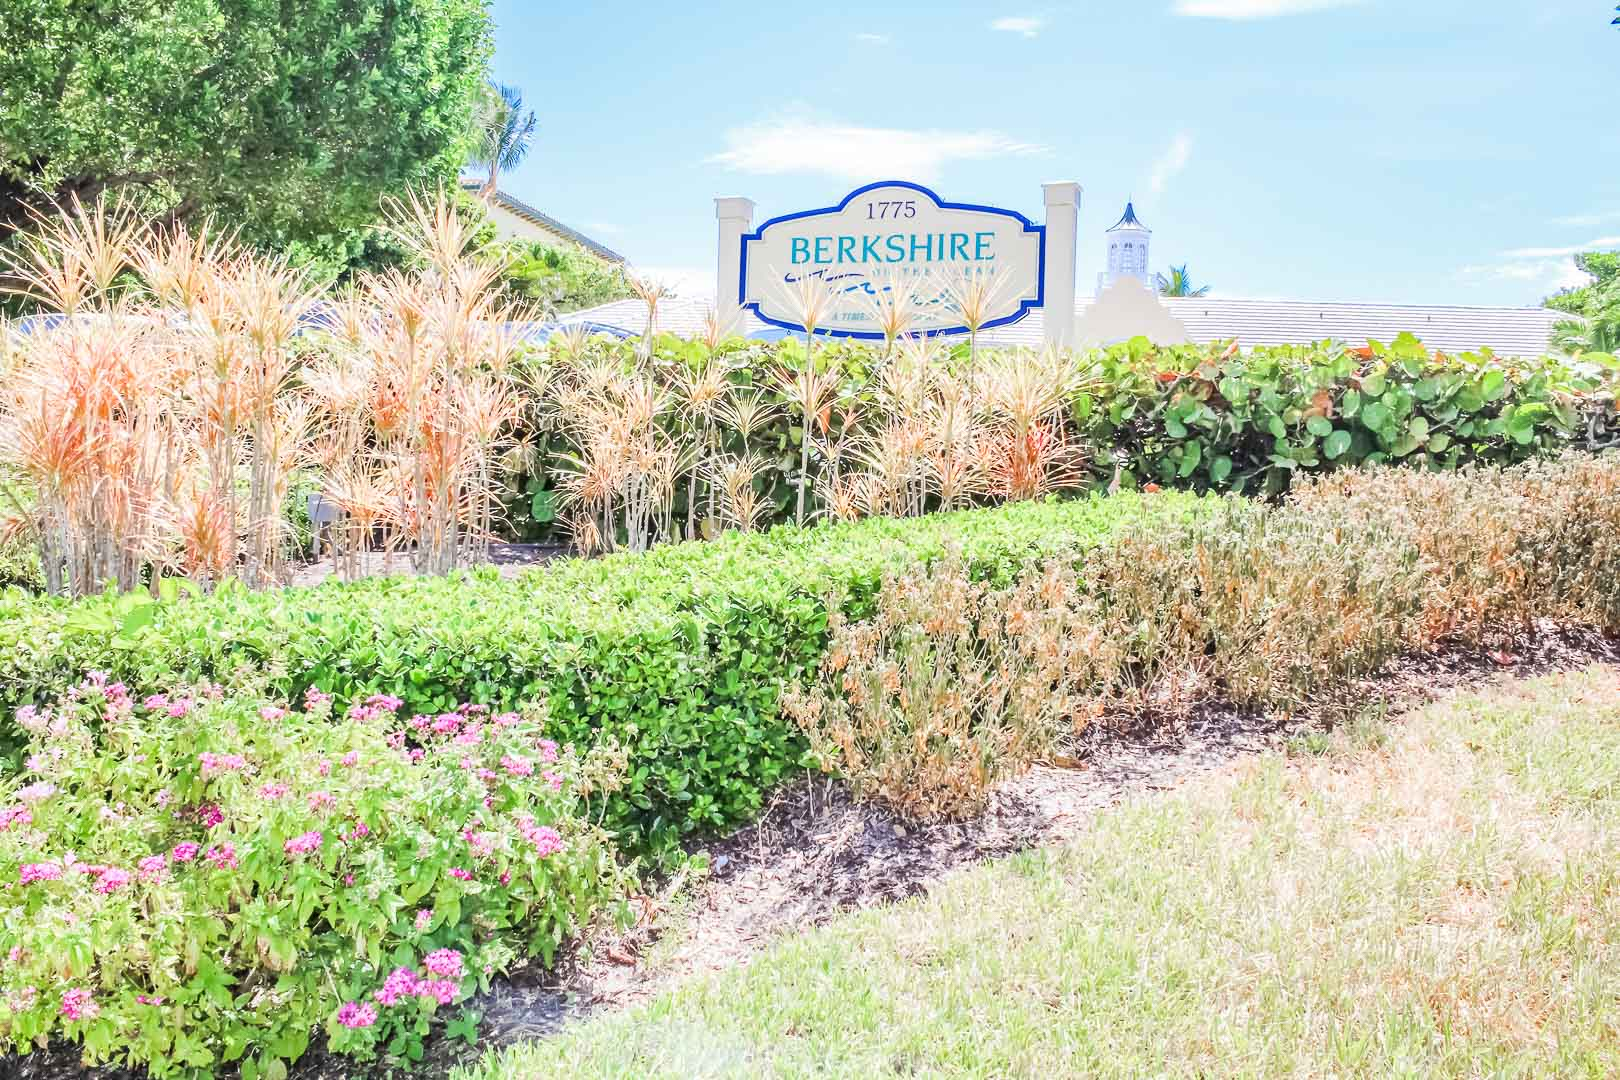 The inviting resort entrance at VRI's Berkshire on the Ocean in Florida.